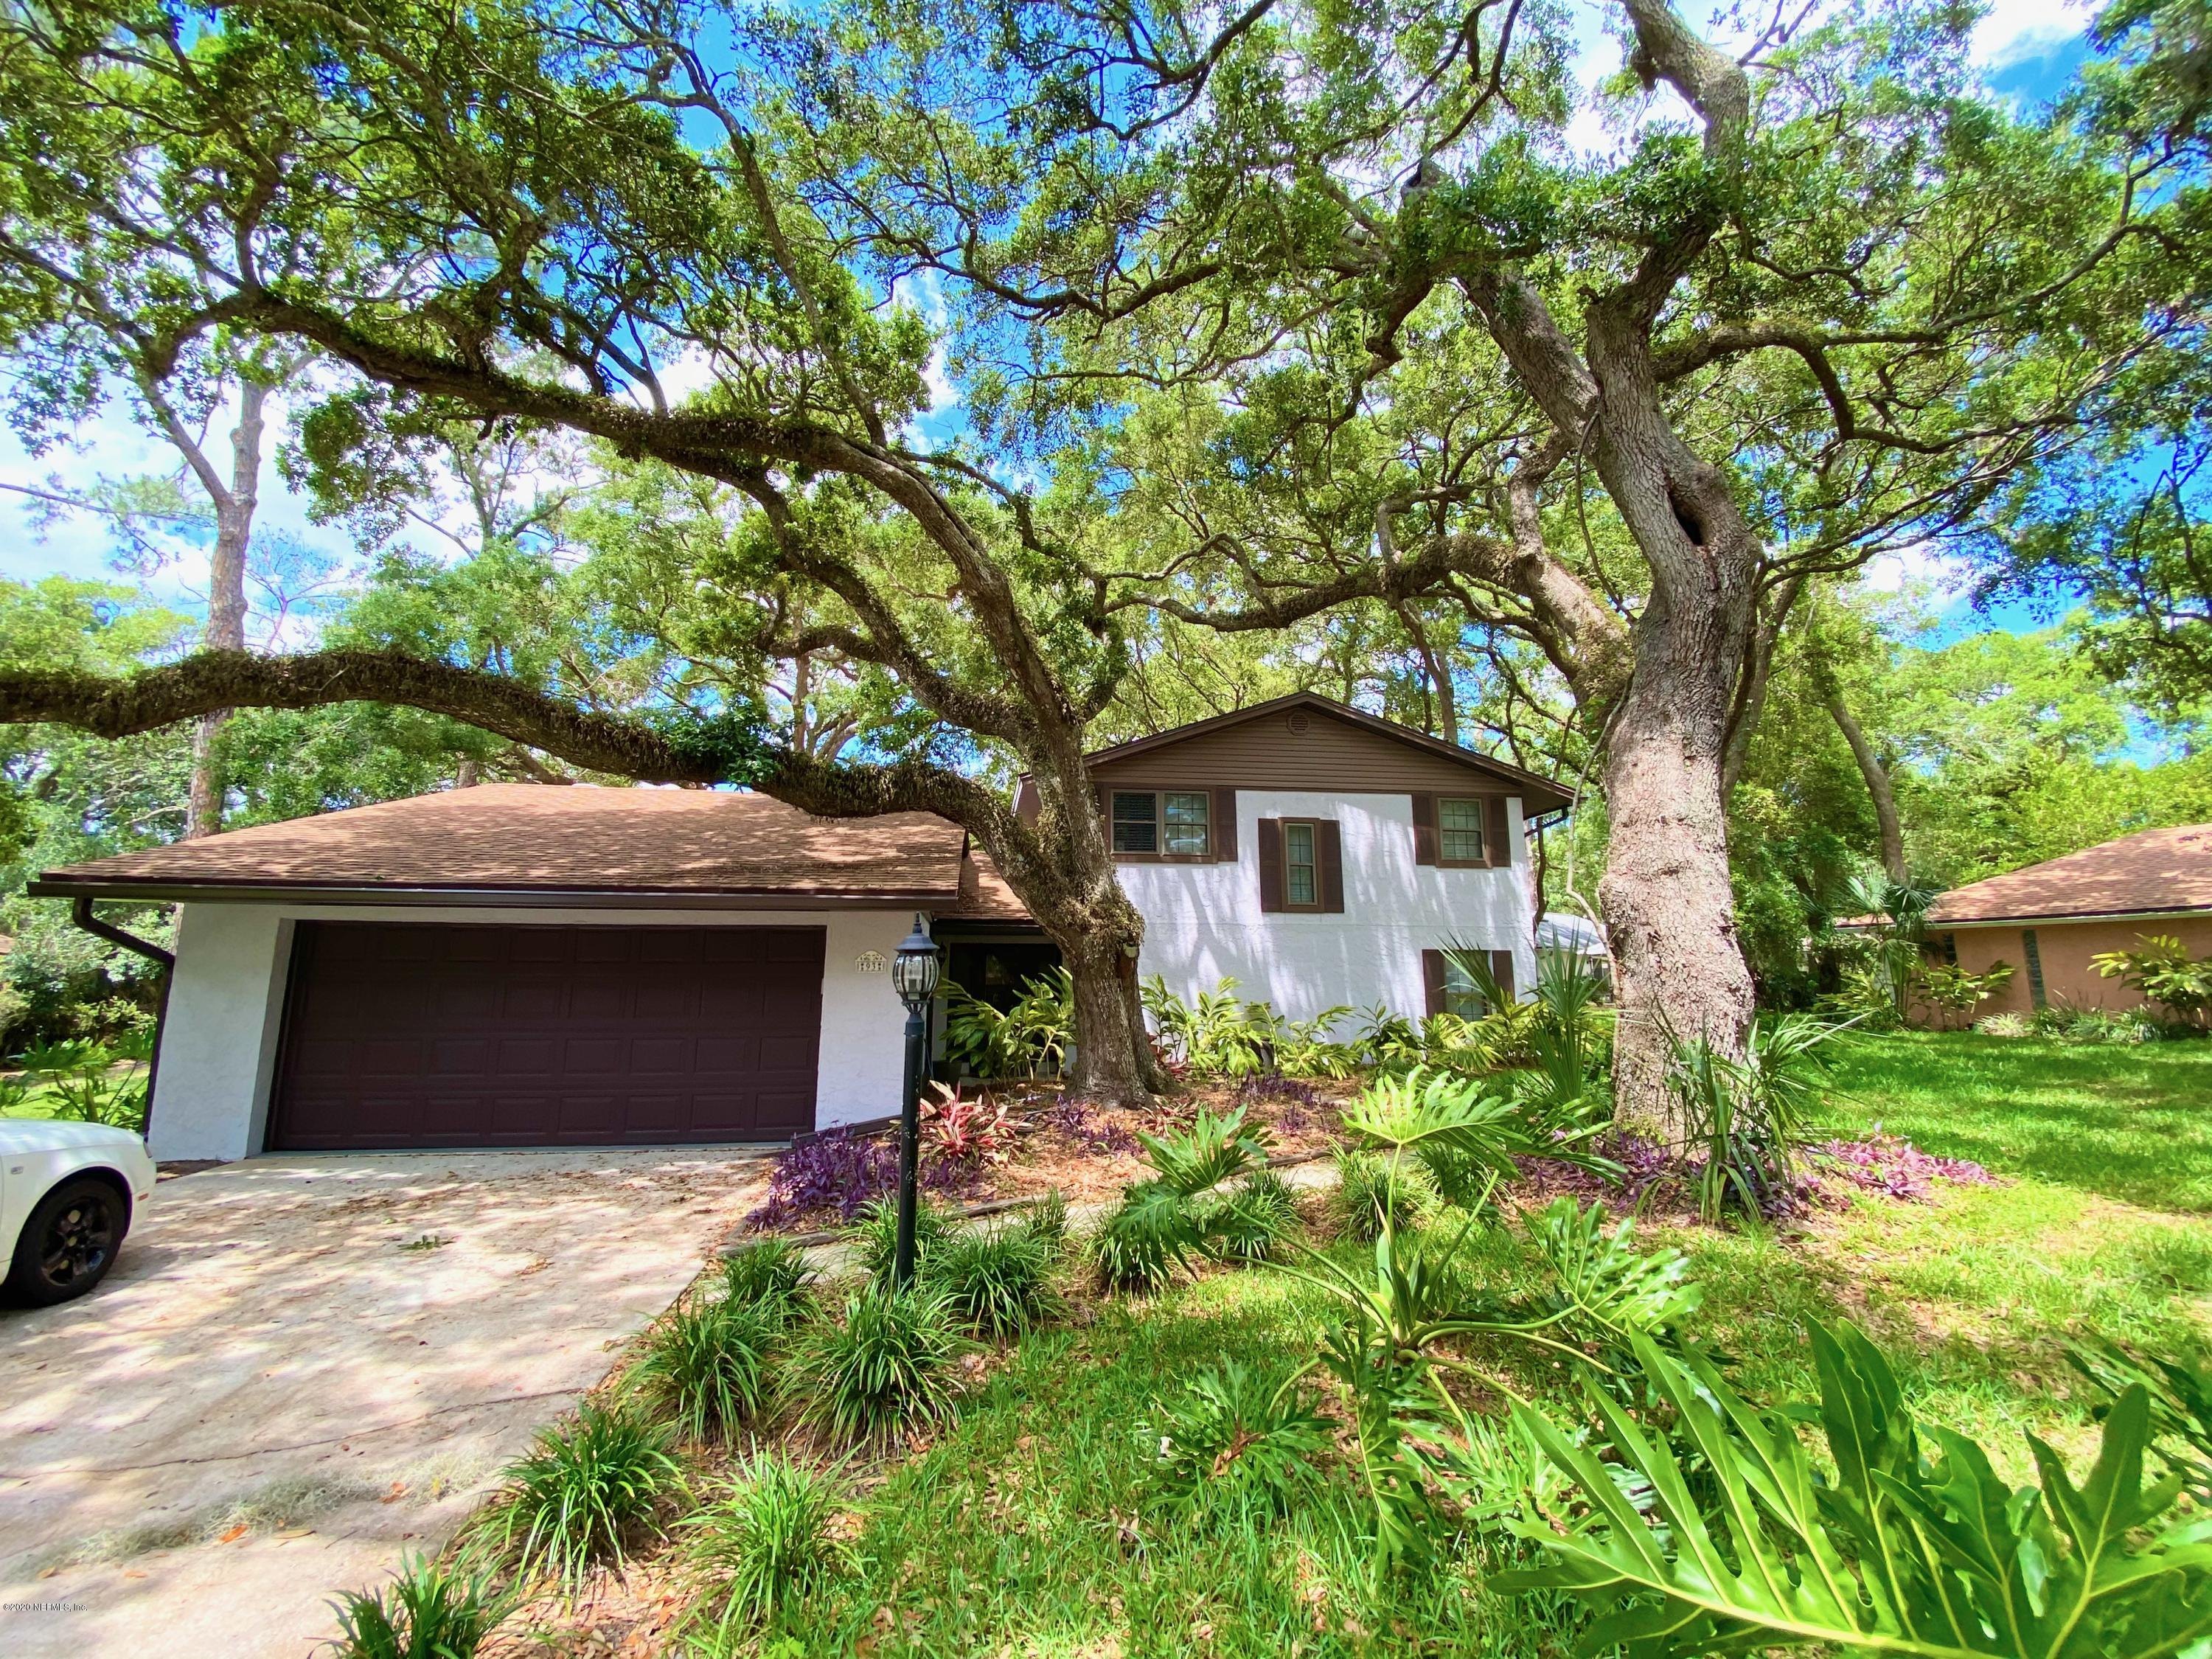 93 ABALONE, PONTE VEDRA BEACH, FLORIDA 32082, 4 Bedrooms Bedrooms, ,3 BathroomsBathrooms,Residential,For sale,ABALONE,1041312